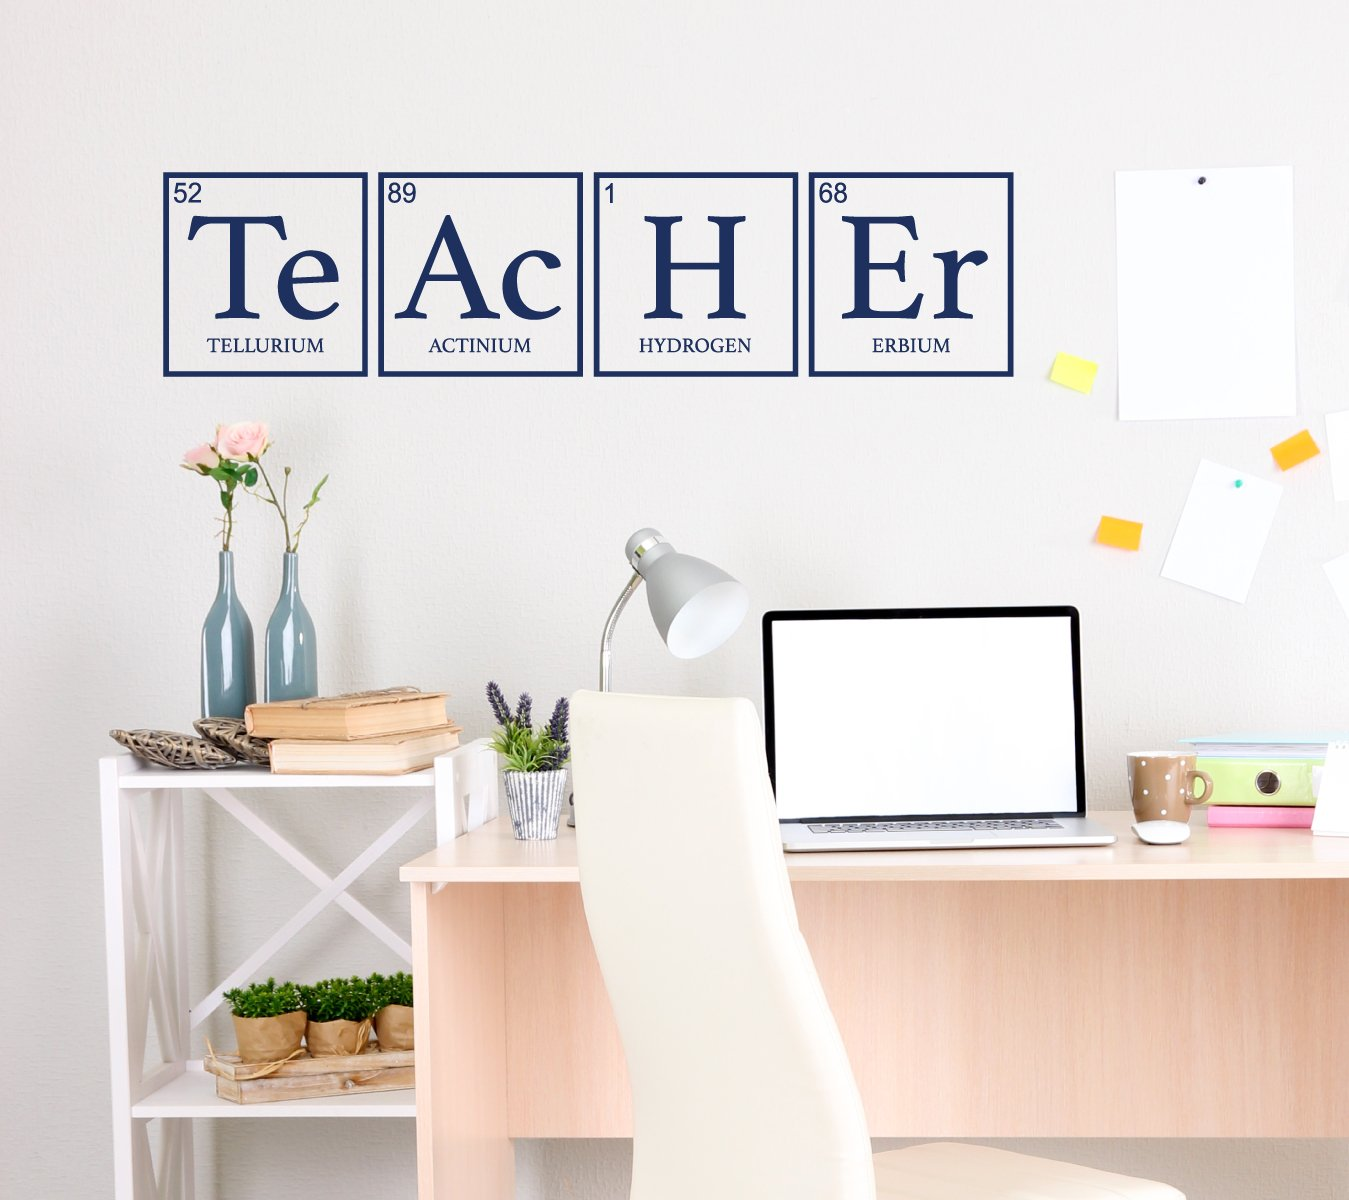 Wall Decal for Teachers - Teacher Periodic Table Decor - Science Art Decoration for Office, School or Classroom